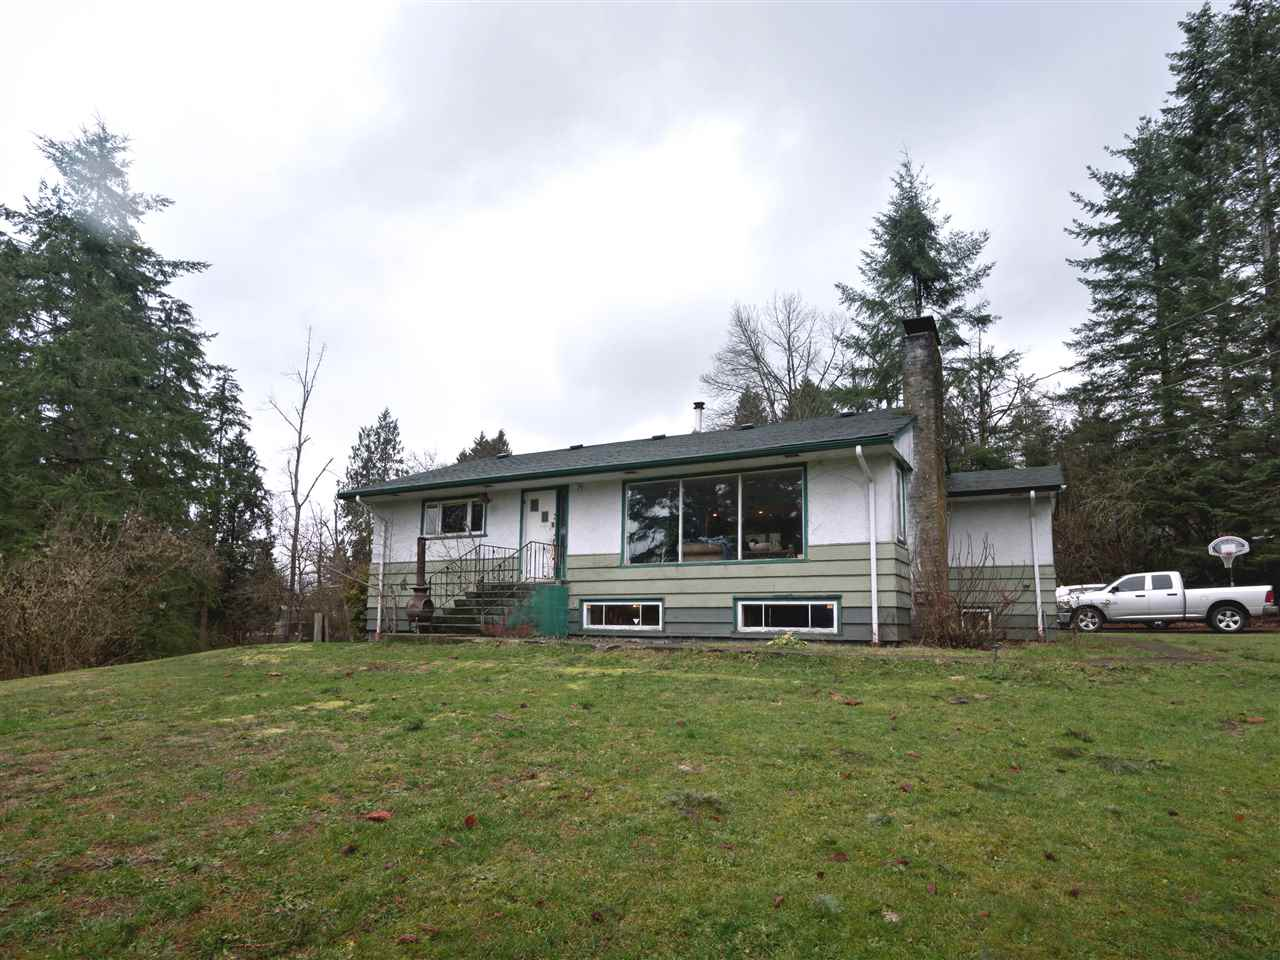 Absolutely gorgeous 1.78 acre property in Silverdale with fabulous Fraser River View. Bordered by beautiful Jaimeson Creek. Older solid 1200 sq.ft. rancher w/full basement and separate entry sits high on the knoll and has total privacy. Shared driveway. Has had some updates. Beautiful American cherry floors, newer kitchen and appliances. Huge parking area. Could have garage rebuilt w/coach house. All meas. approx.